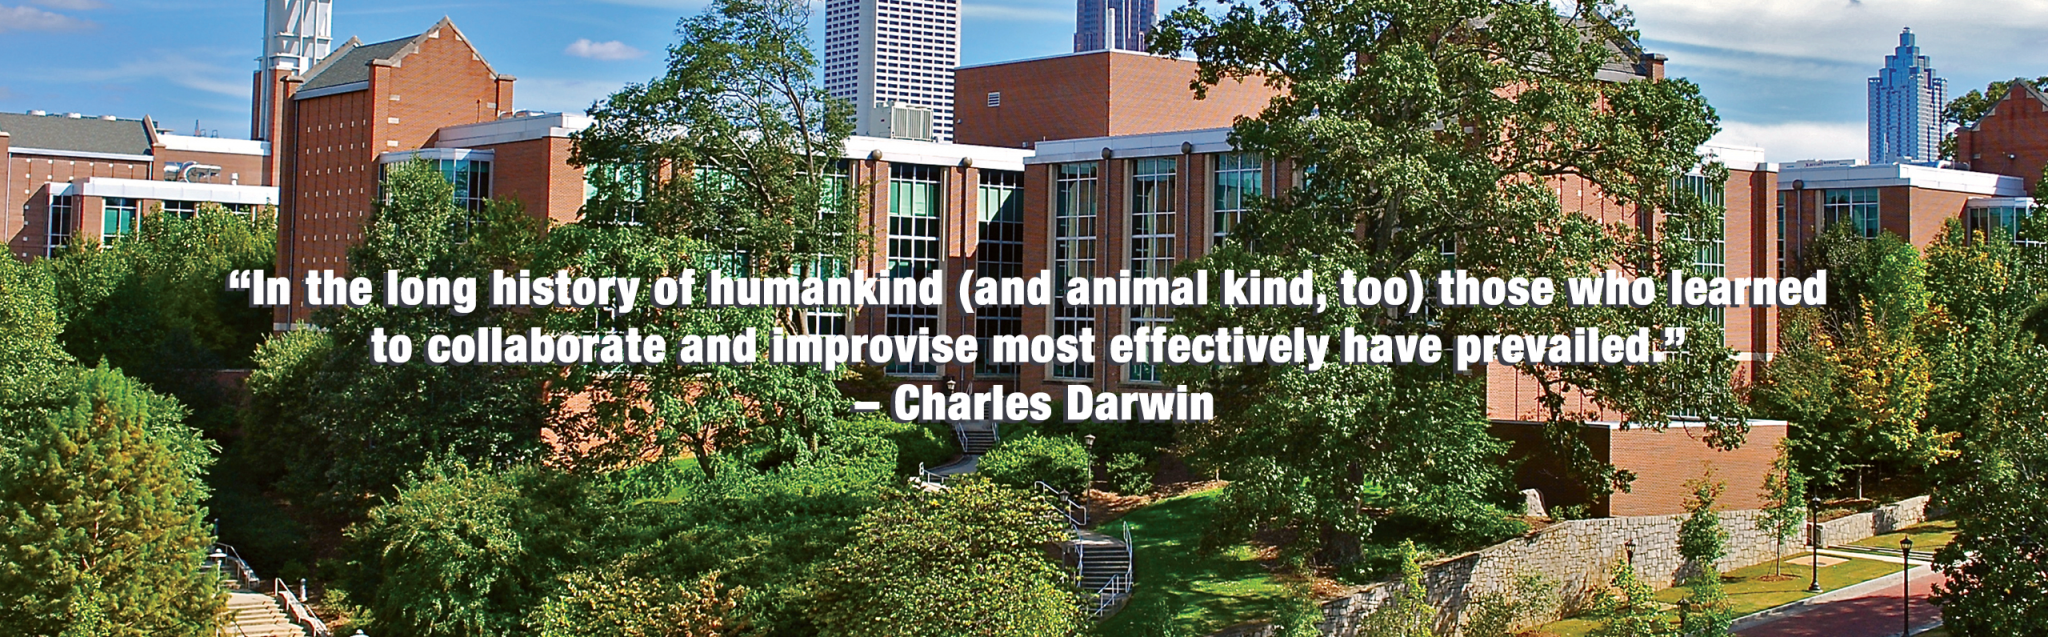 Petit Building and Darwin Quote